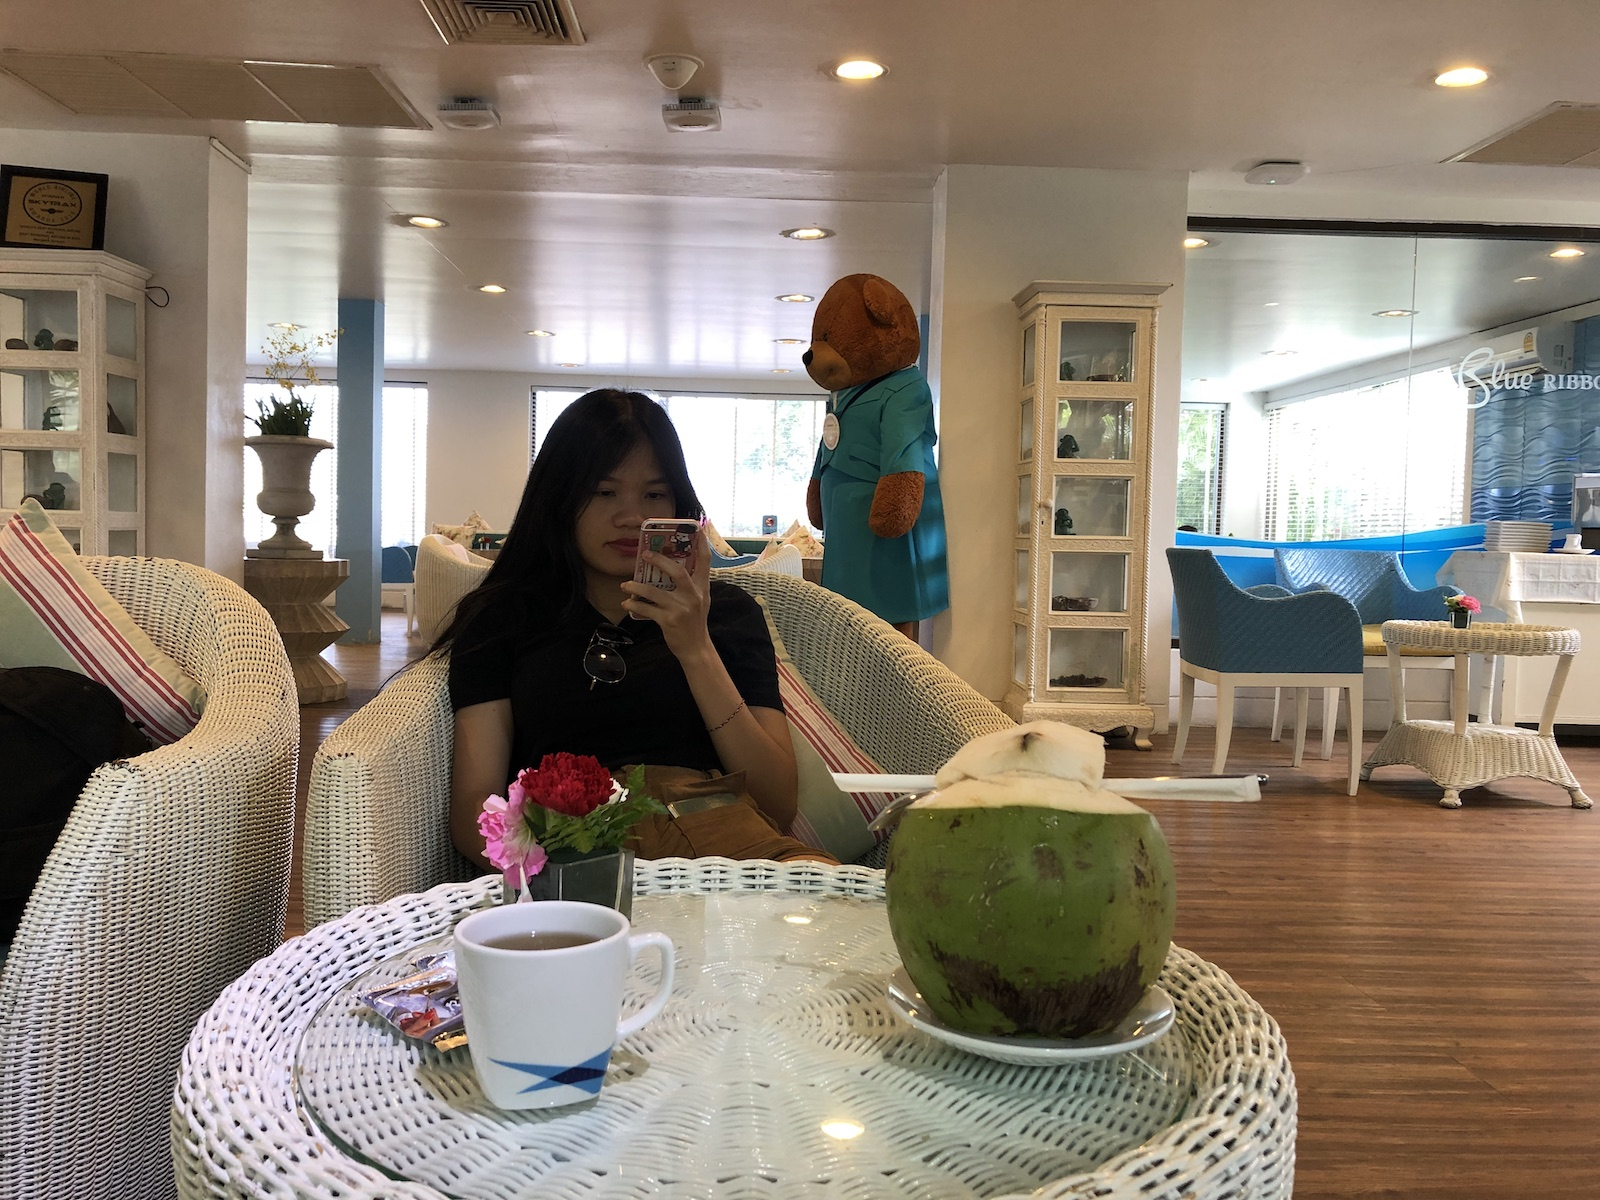 Enjoy a free coconut at Koh Samui Airport- Blue Ribbon Lounge, Thailand